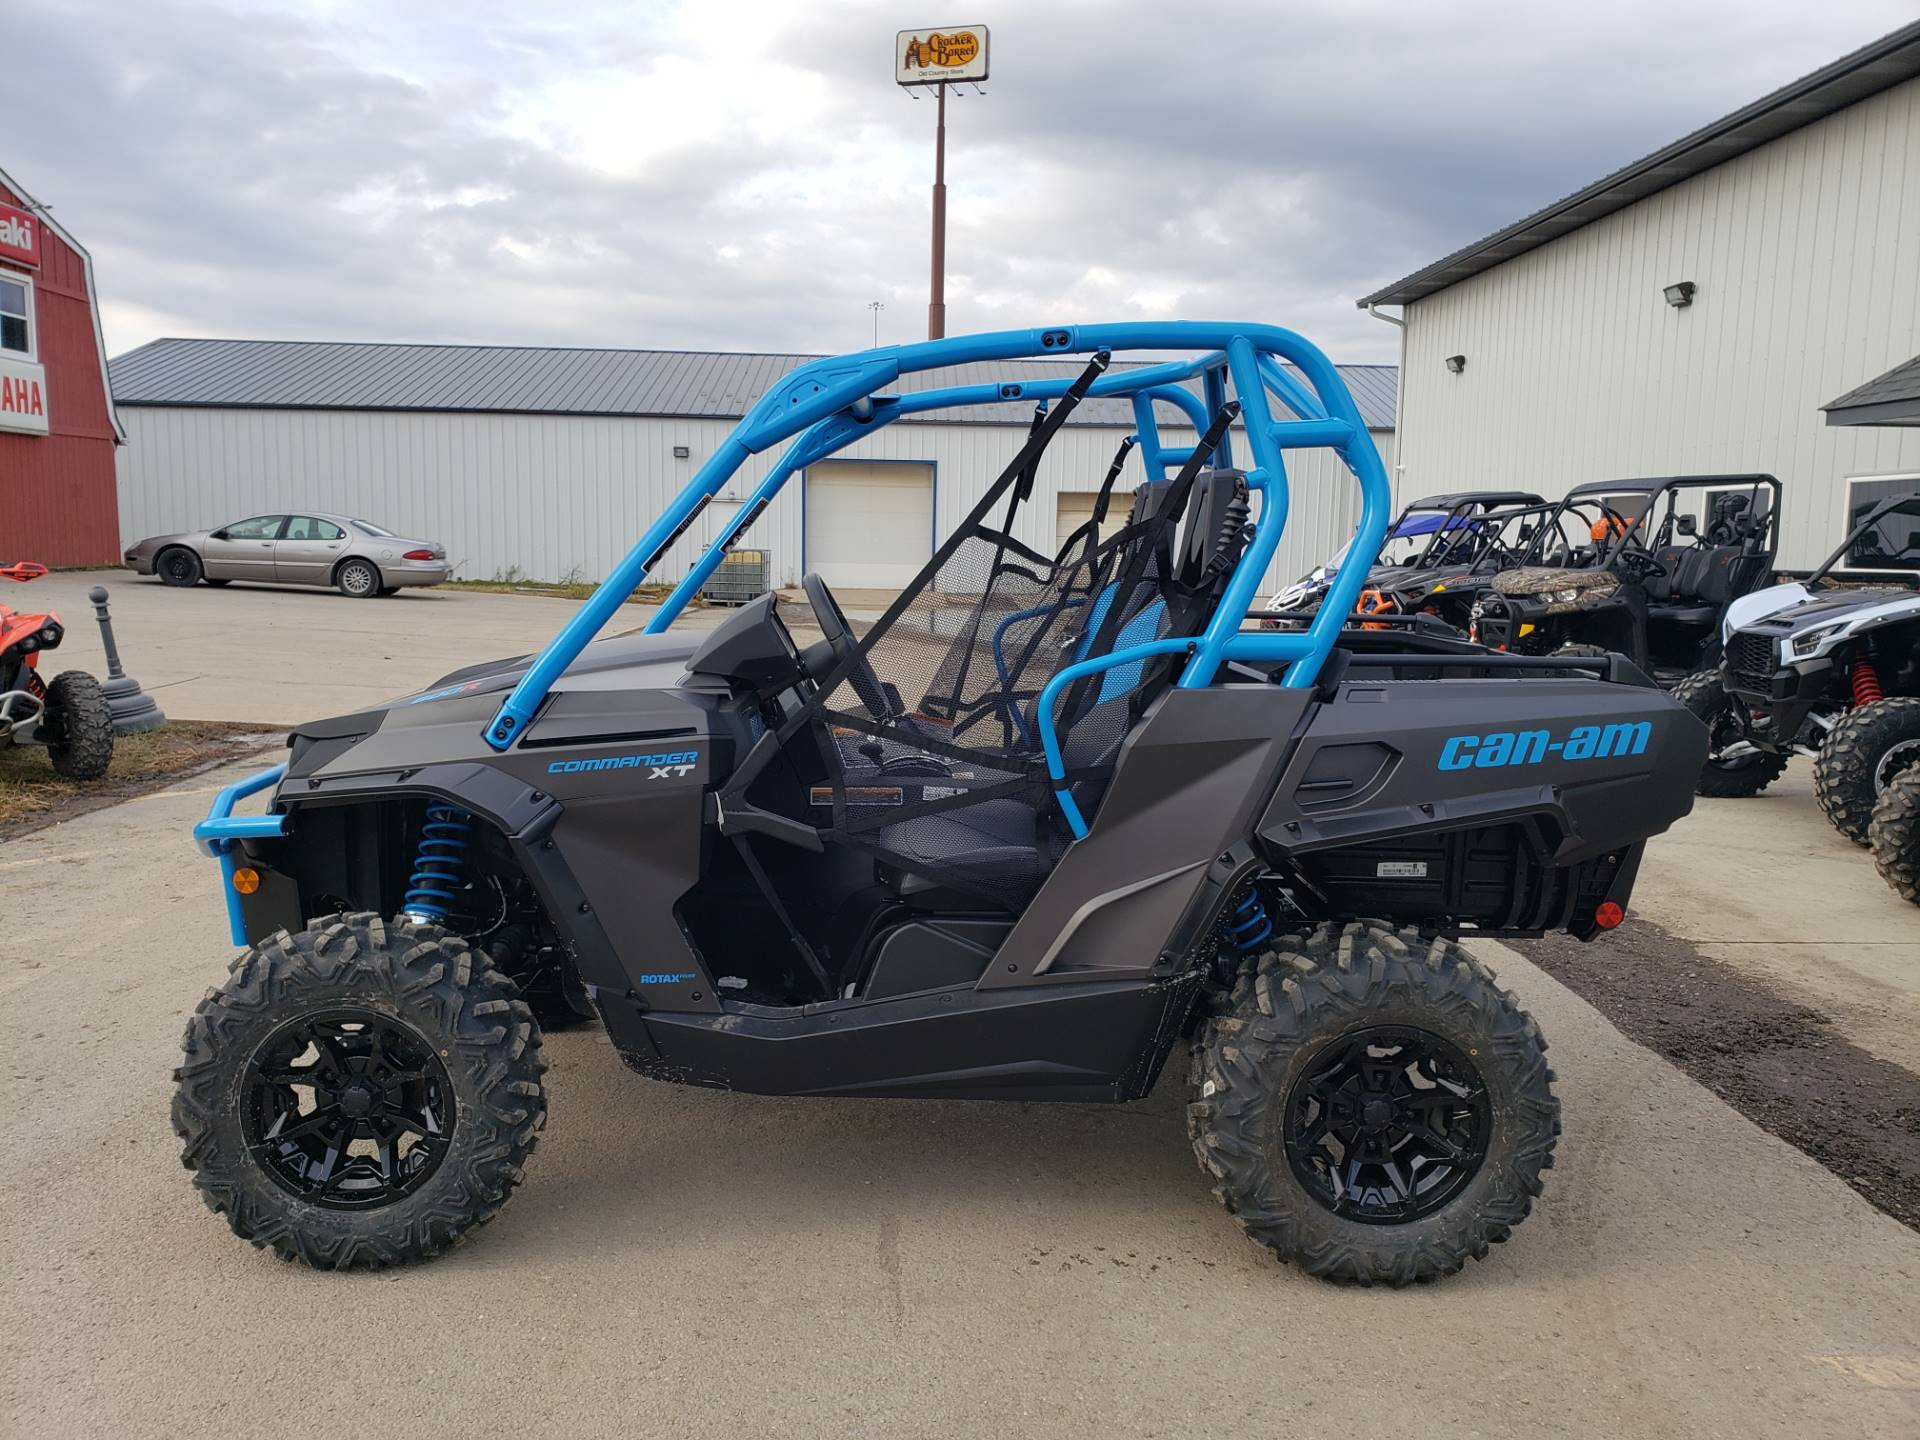 2020 Can-Am Commander XT 800R in Cambridge, Ohio - Photo 1